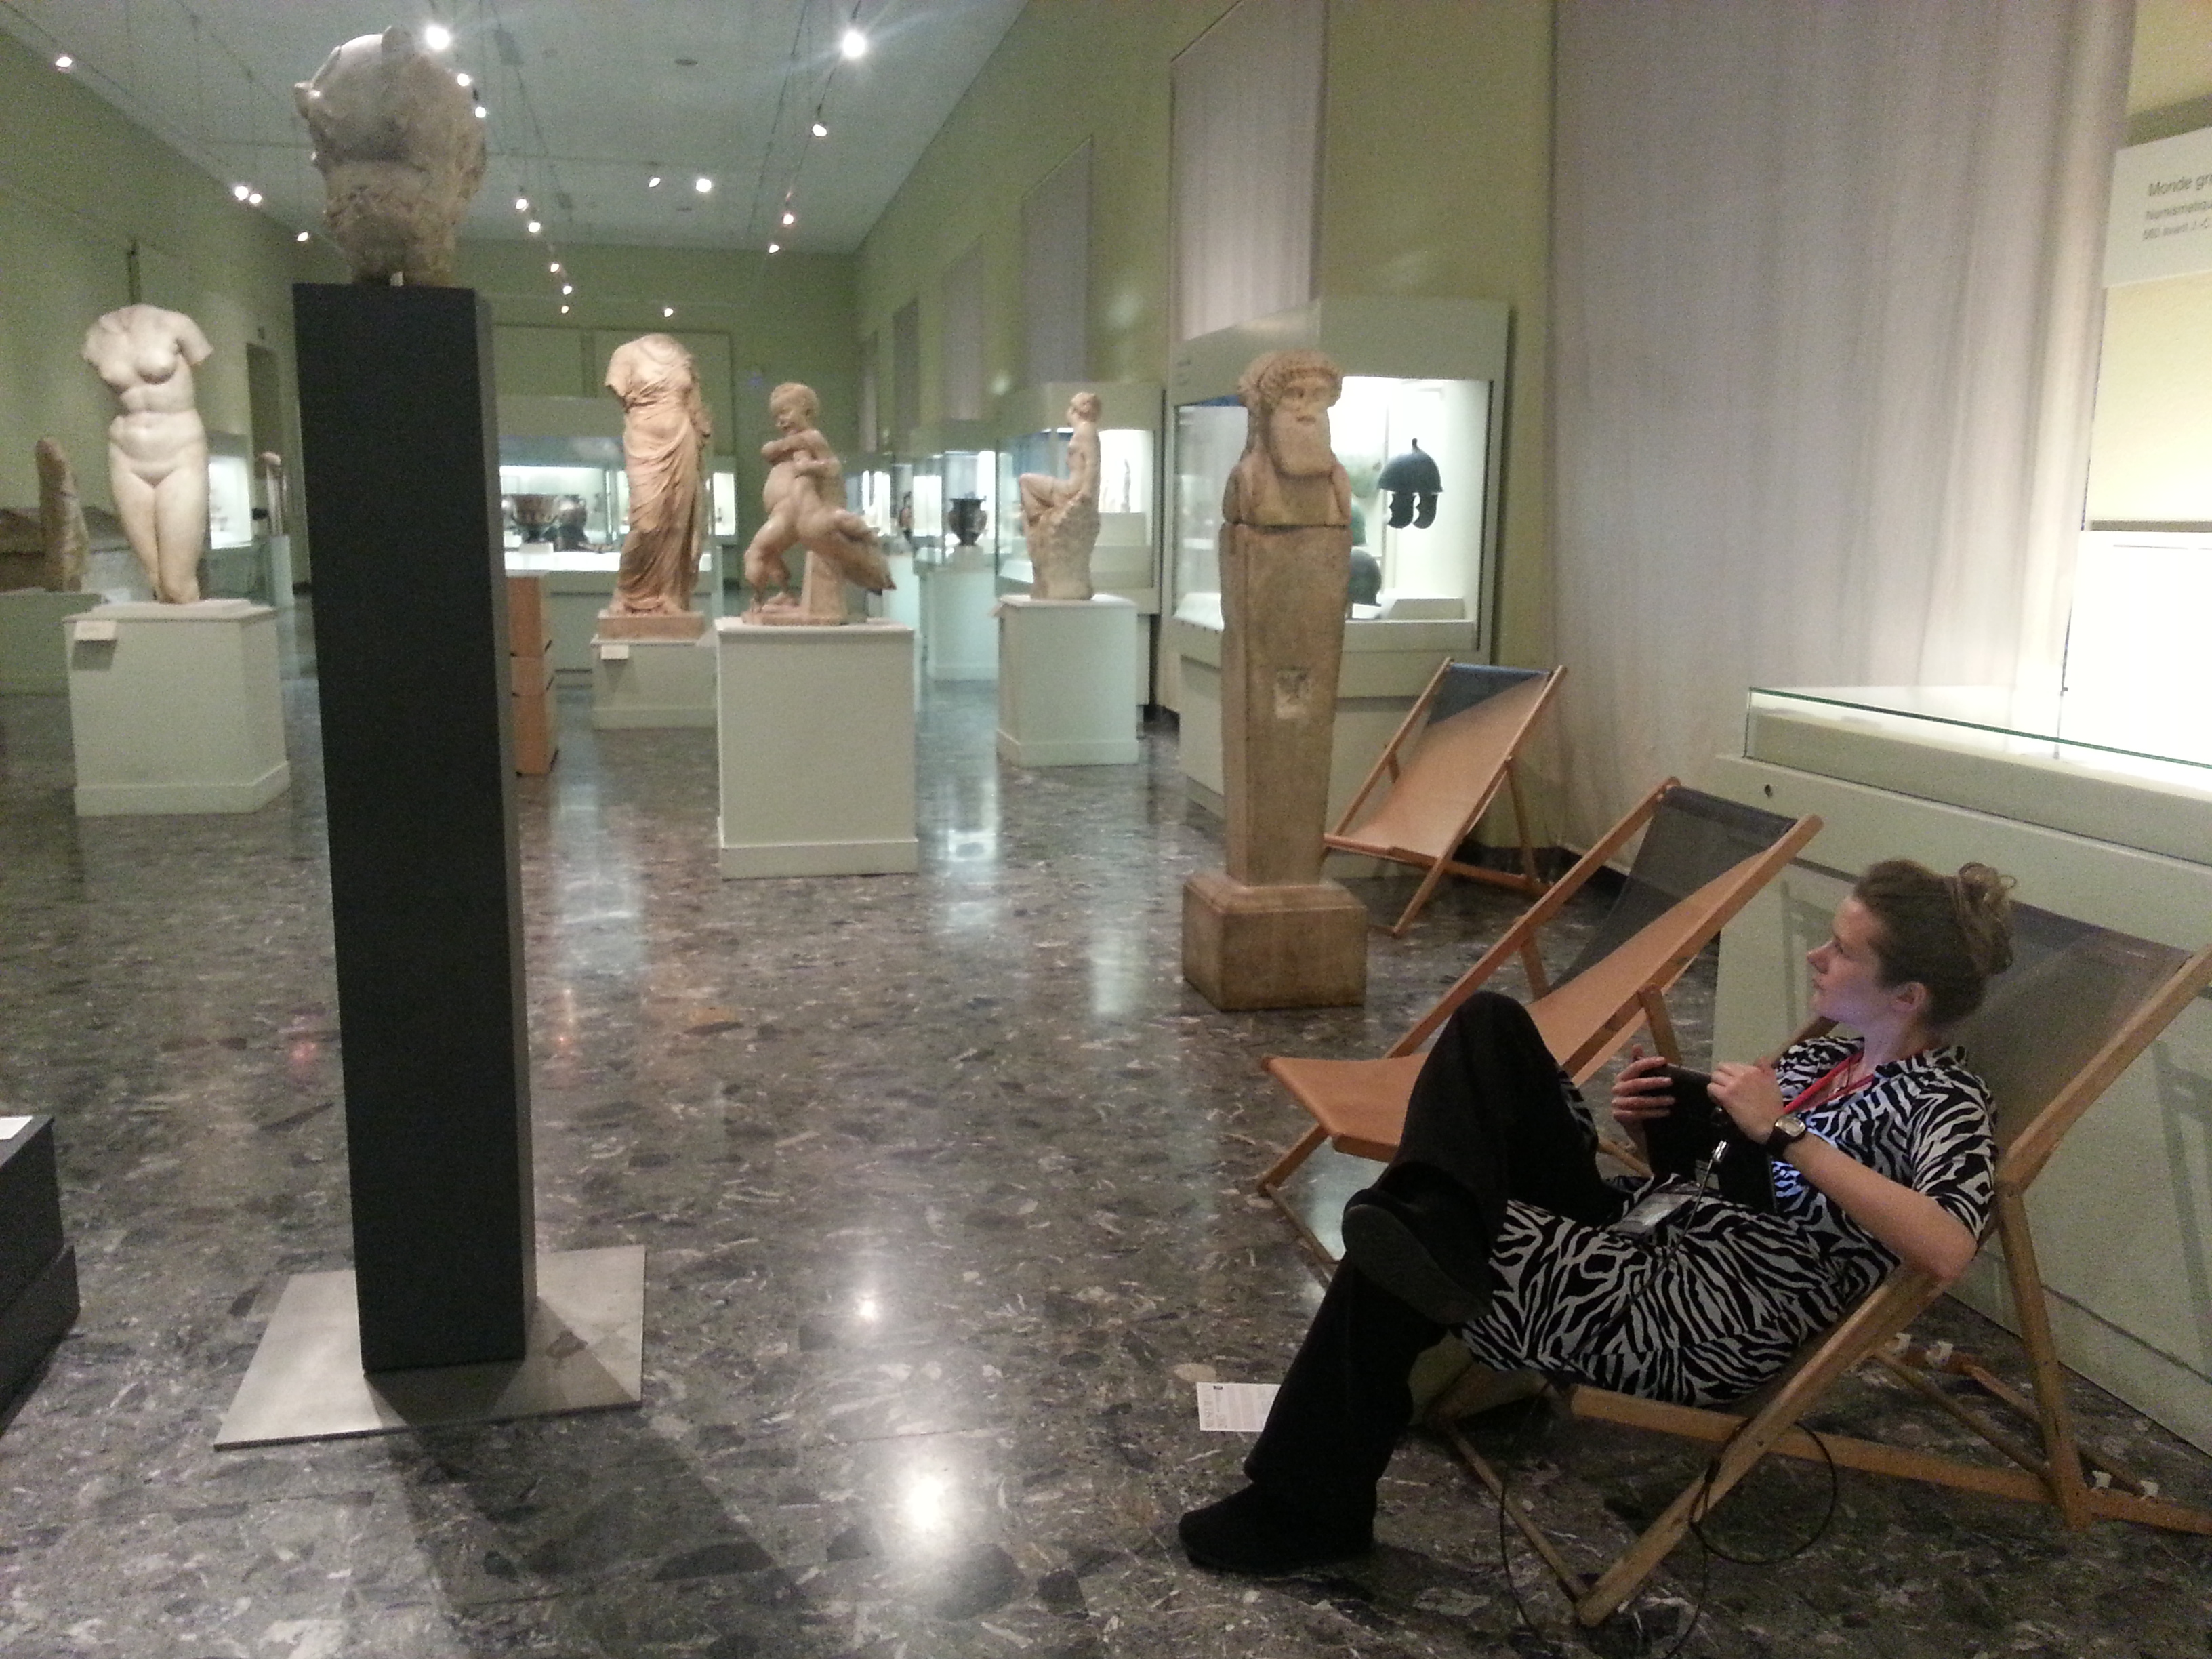 Visitors can browse the Ipad at their disposal while relaxing on beach chairs! Musée d'Art et d'Historie. Photo: Conxa Rodà